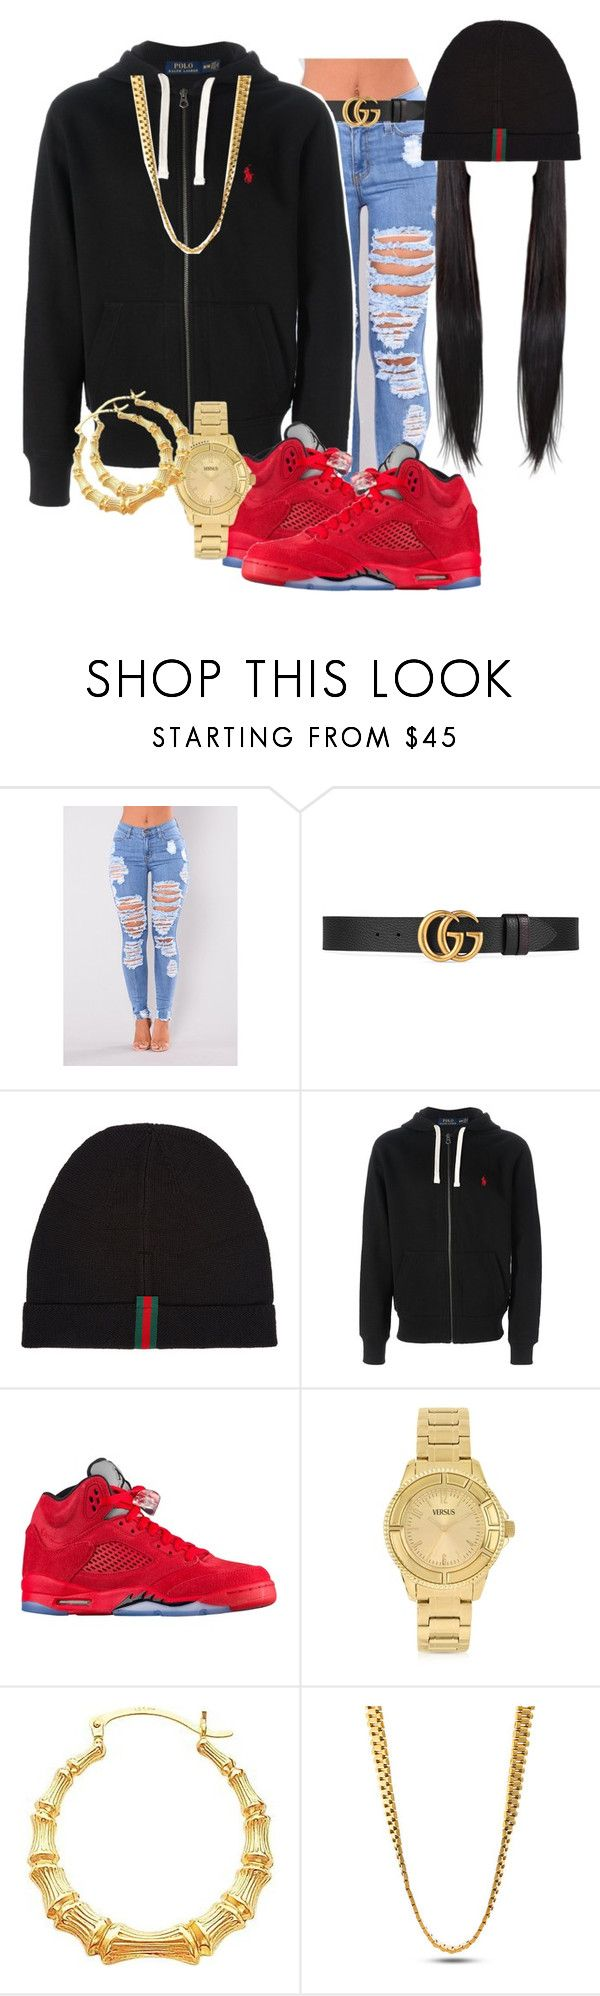 """"" by kashharmonii ❤ liked on Polyvore featuring Gucci, Polo Ralph Lauren, Versus and King Ice"